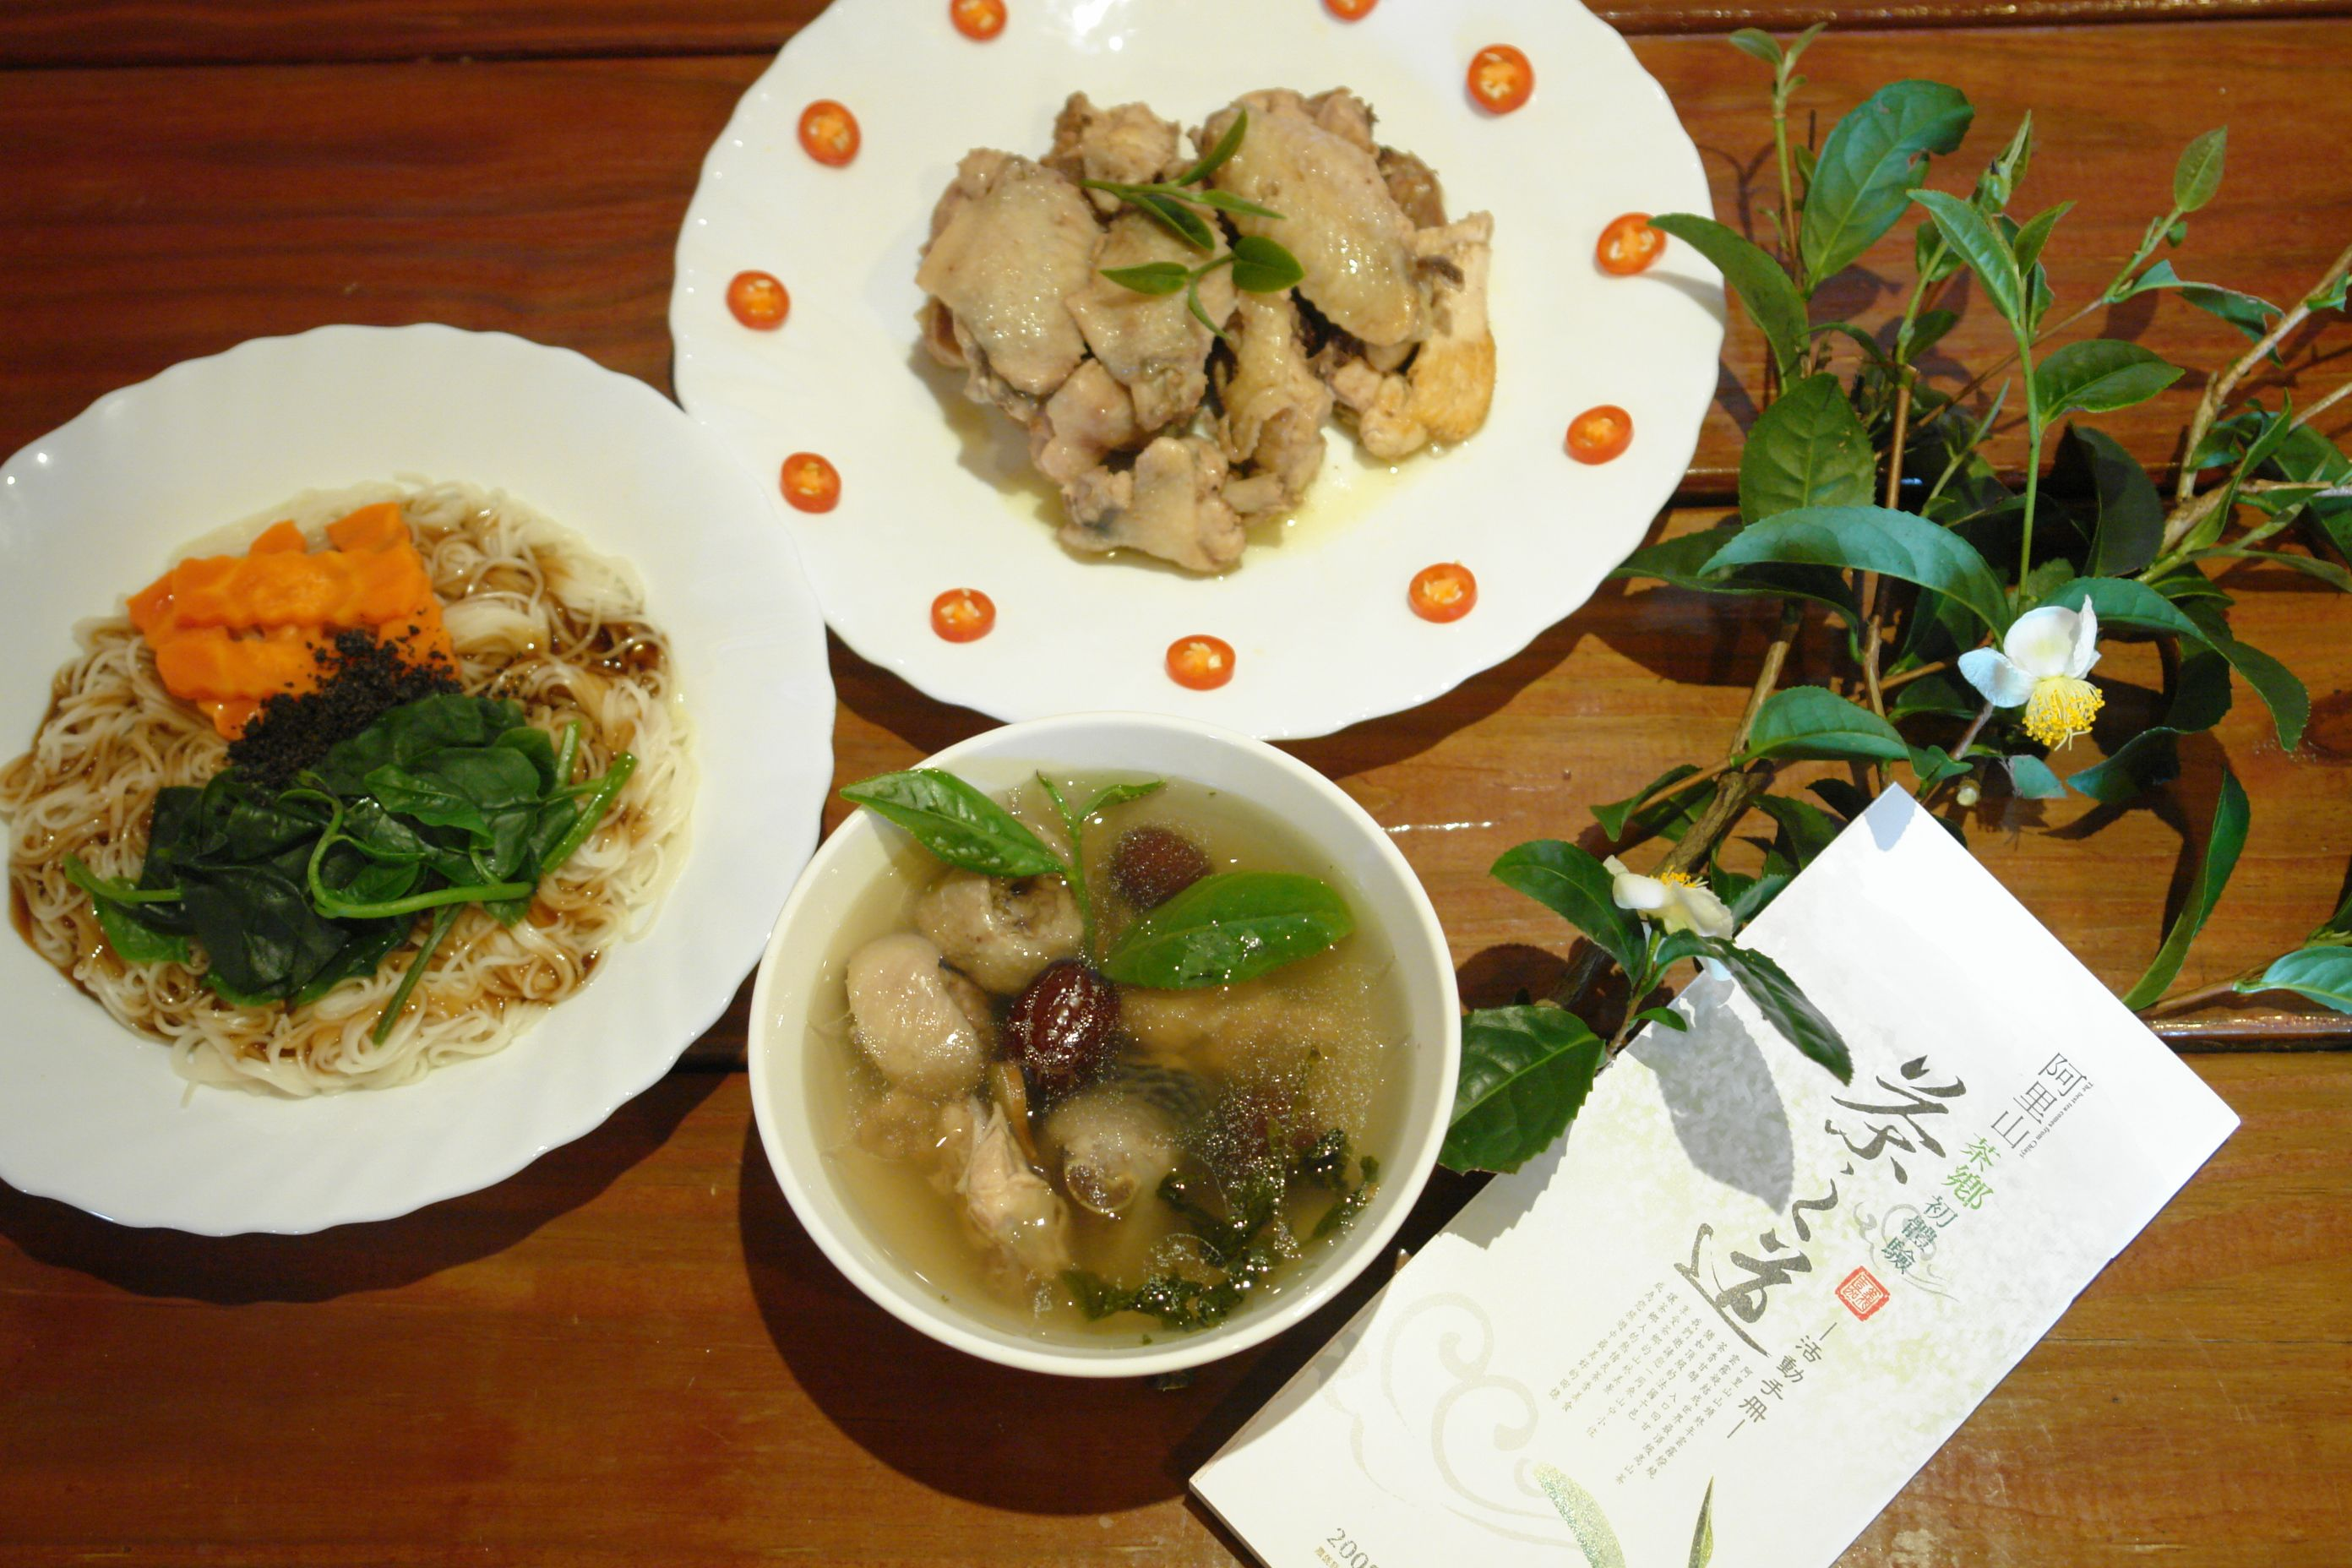 Chicken Soup with Oolong Tea, center, is a recommended delicacy at Huang's cafe.